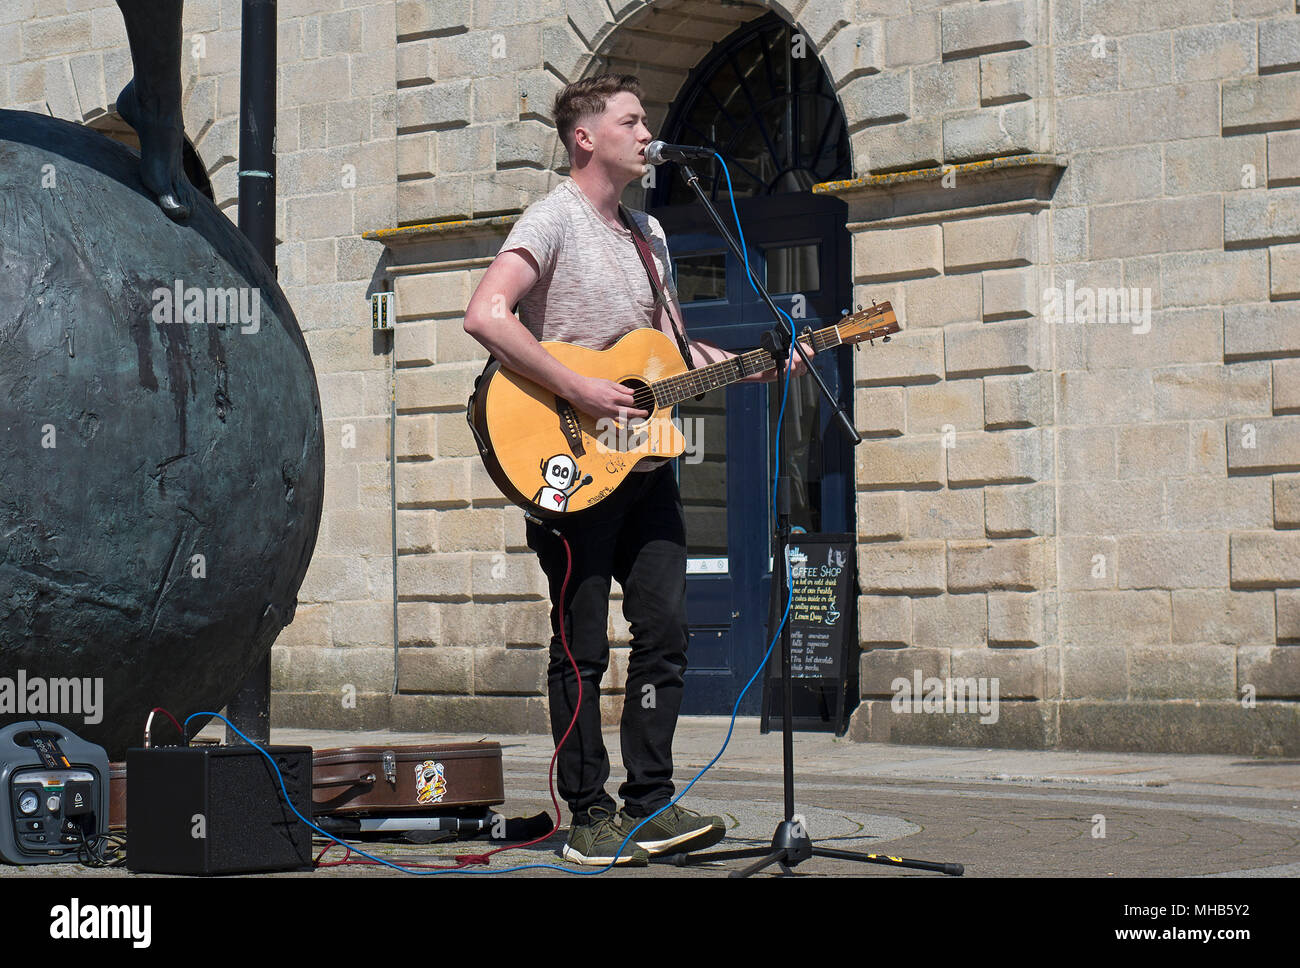 teenage busker in the cornish city of truro, cornwall, england, britain, uk. - Stock Image